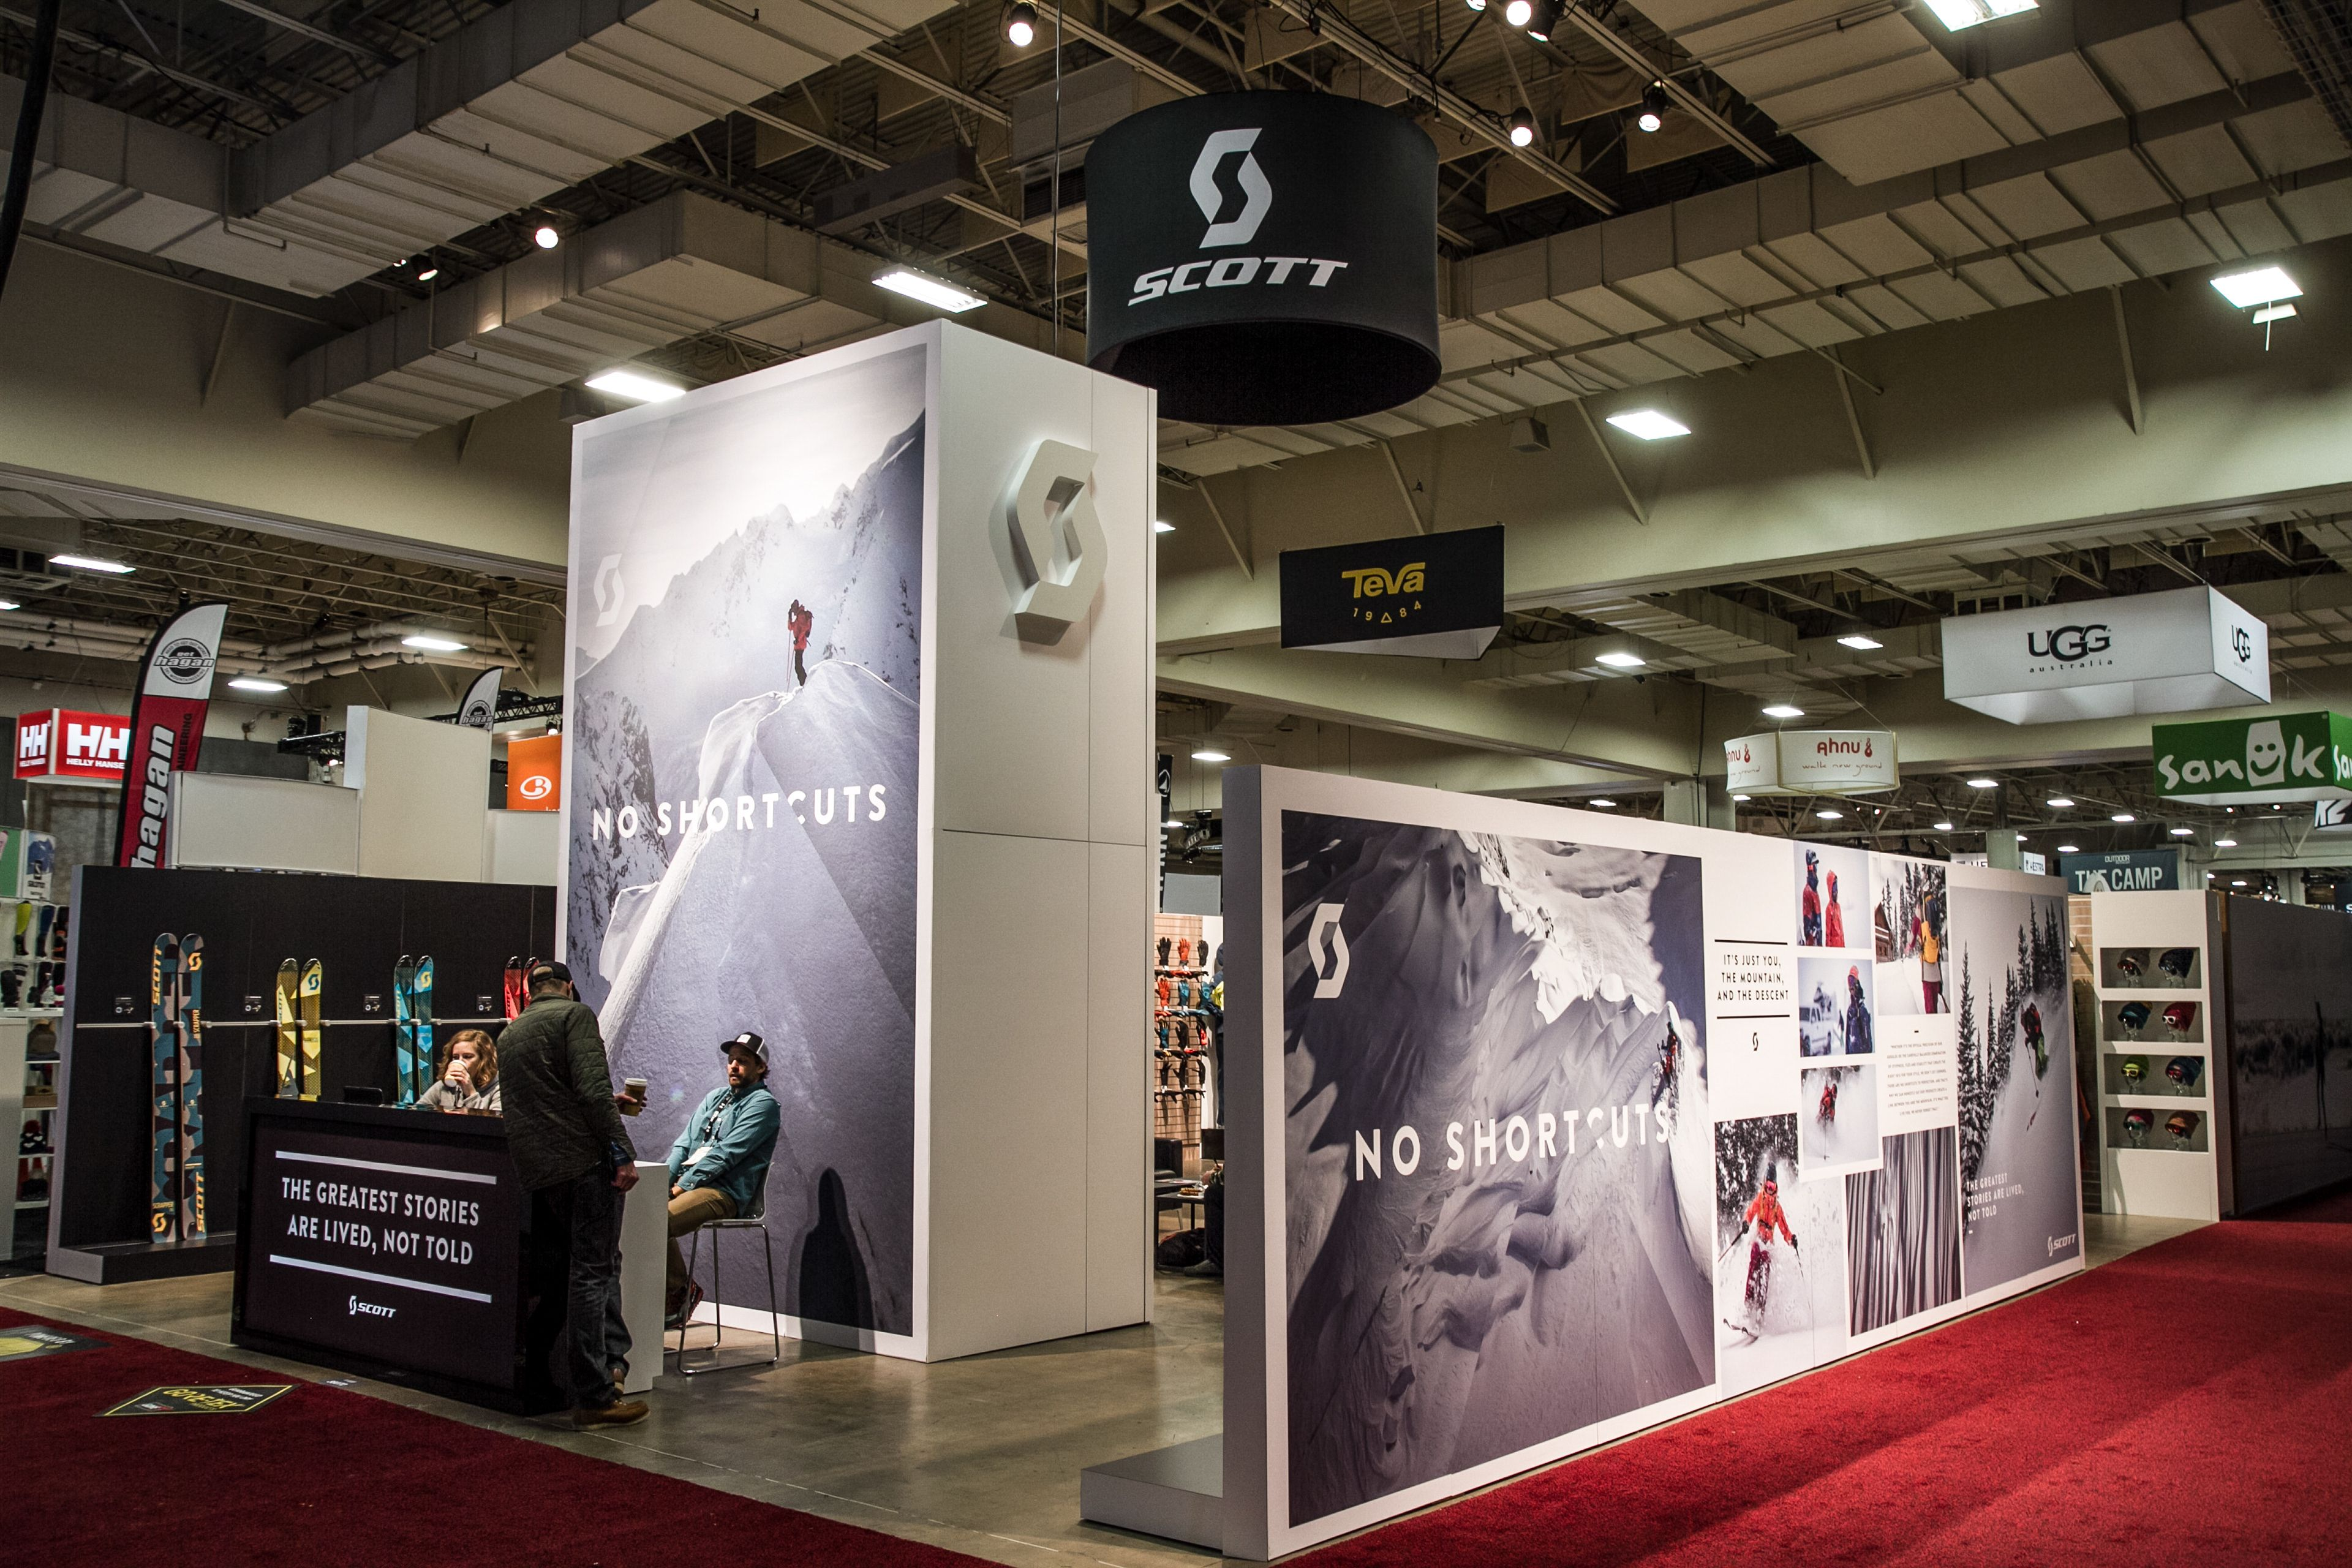 Trade Show Booth Layout : Diy trade show booth banner ideas to copy for your next event